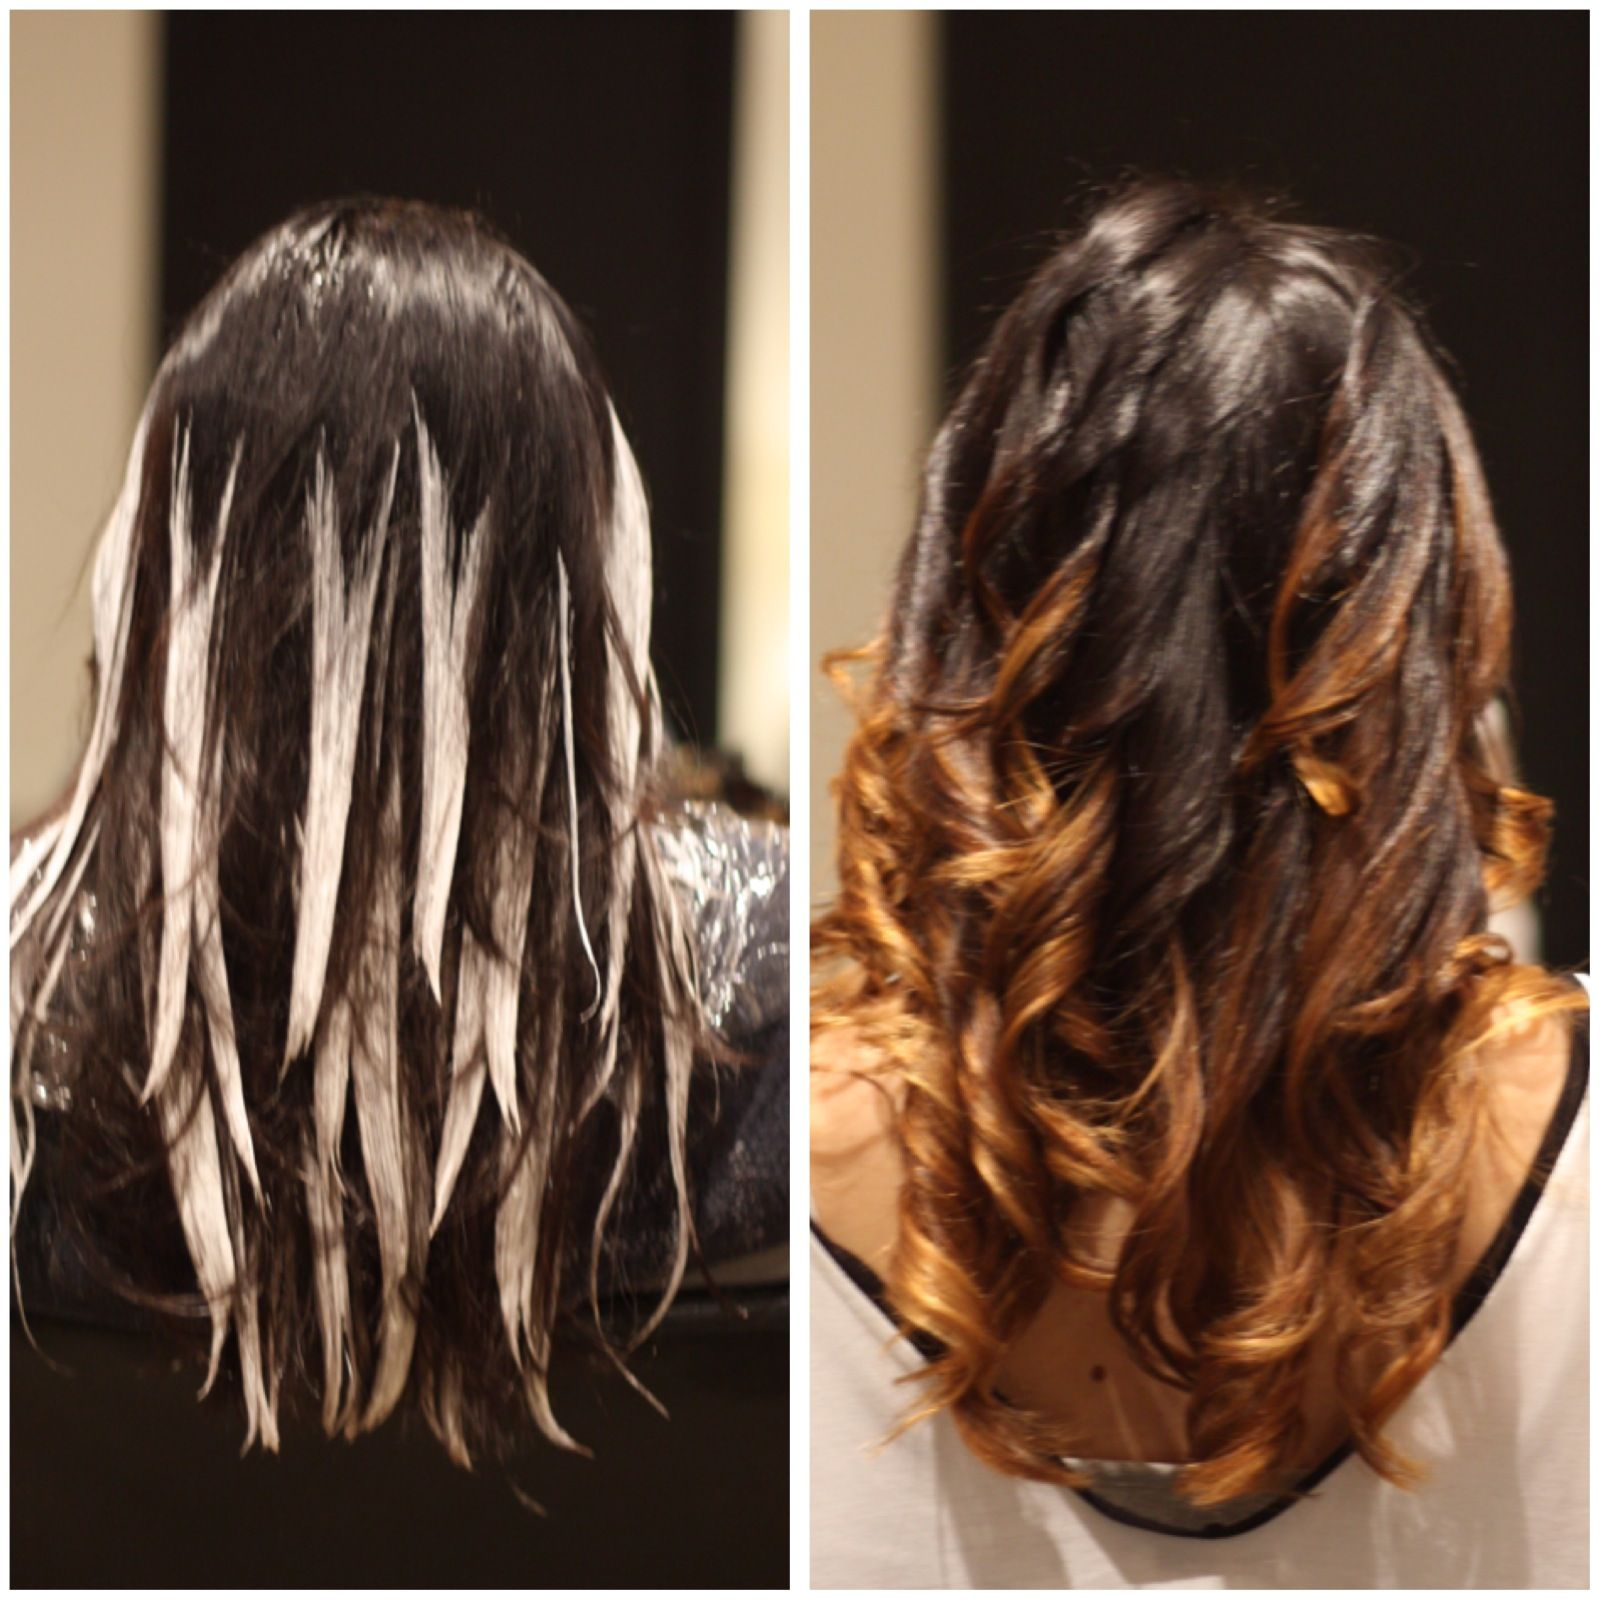 10 Hair Color Ideas For 2016: Hairstyle Trends 2015, 2016, 2017: Before/After Photos